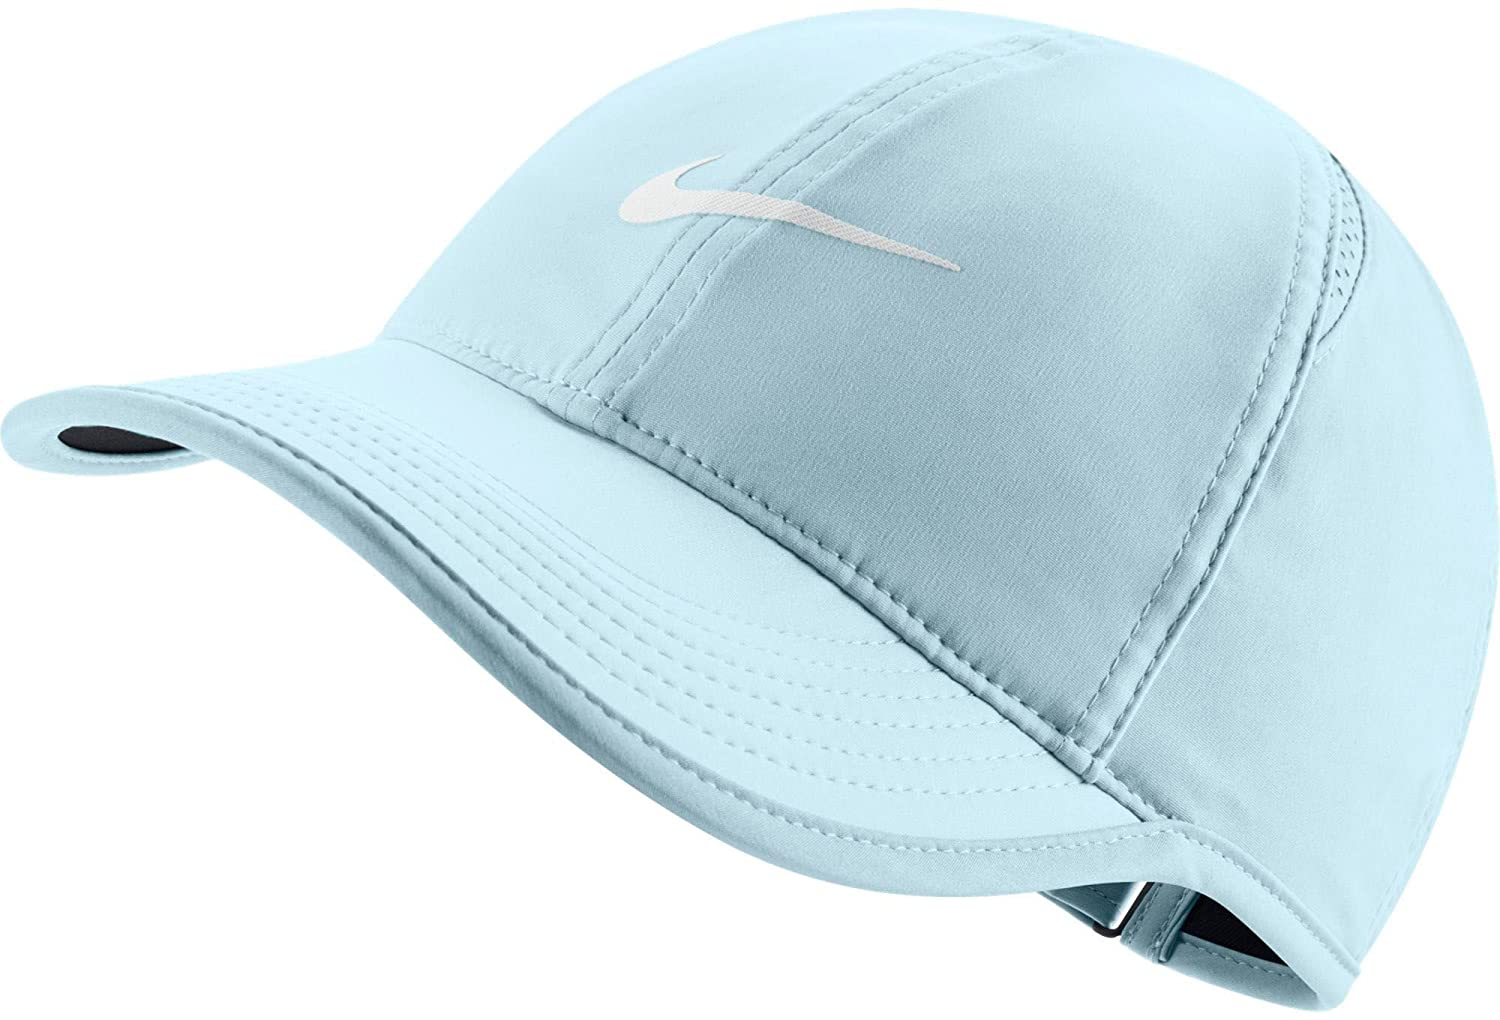 98b4720f9e Nike womens feather light adjustable hat glacier blue onesize sports  outdoors light dep hats jpg 1500x1020